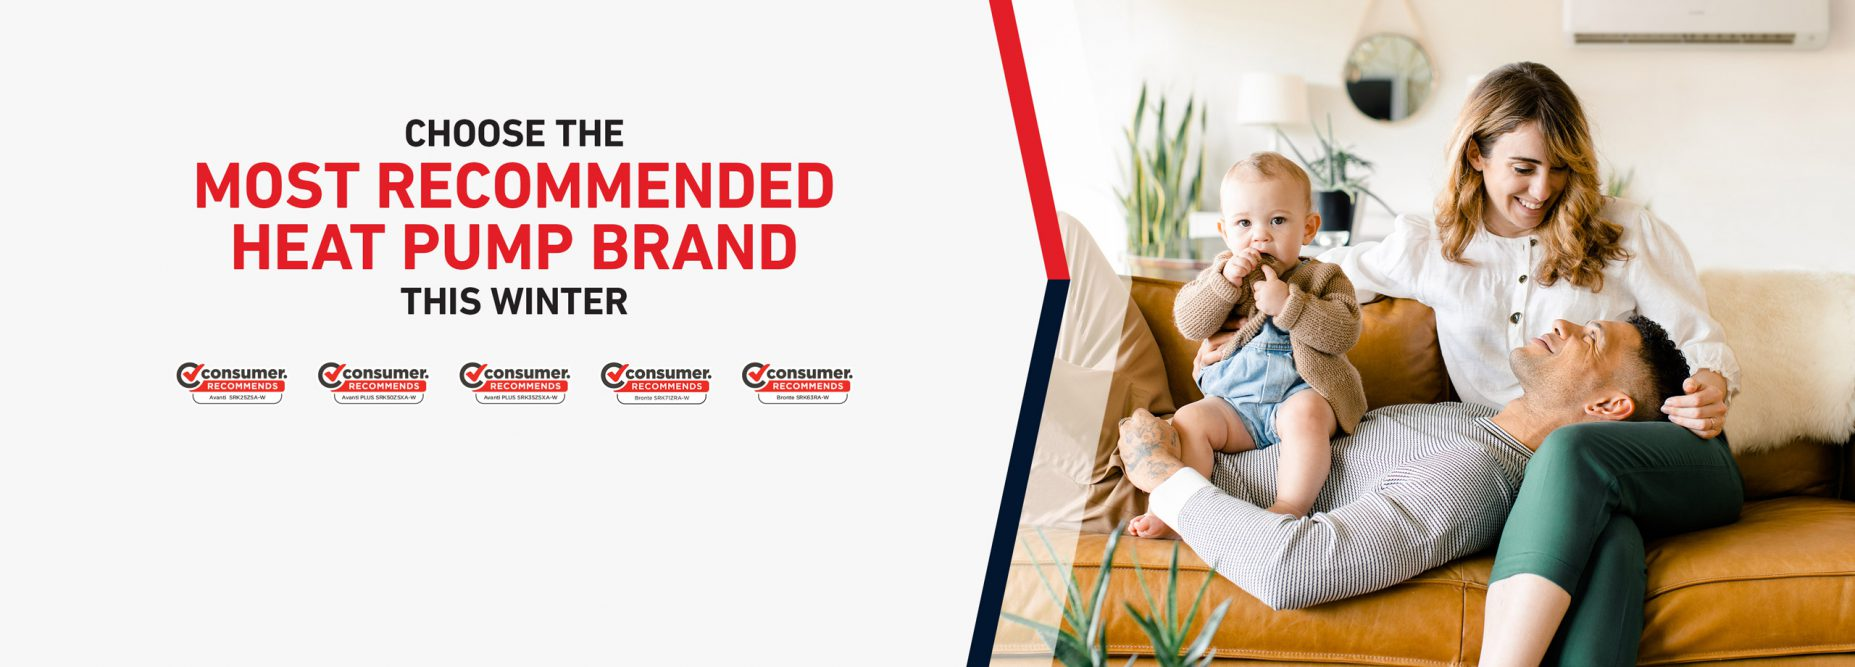 consumer recommends banner image most recommended heat pump brand